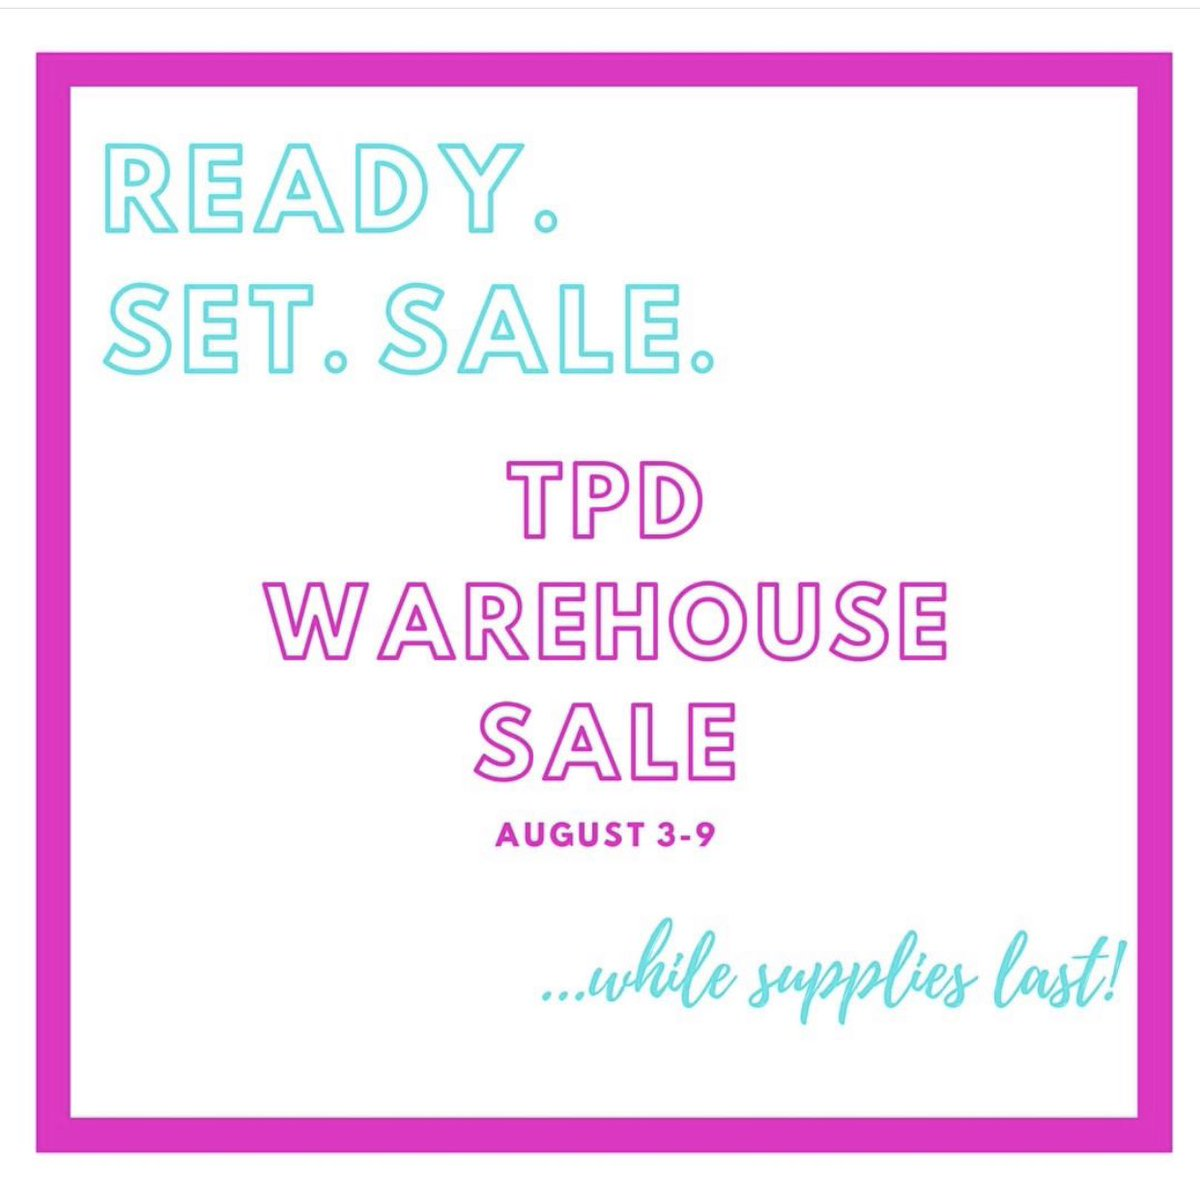 Our Warehouse Sale is up and running!   Up to 40% off!  Hurry! Everything will go fast!  https://t.co/NnxjM940hG https://t.co/7i4x7JS4fd